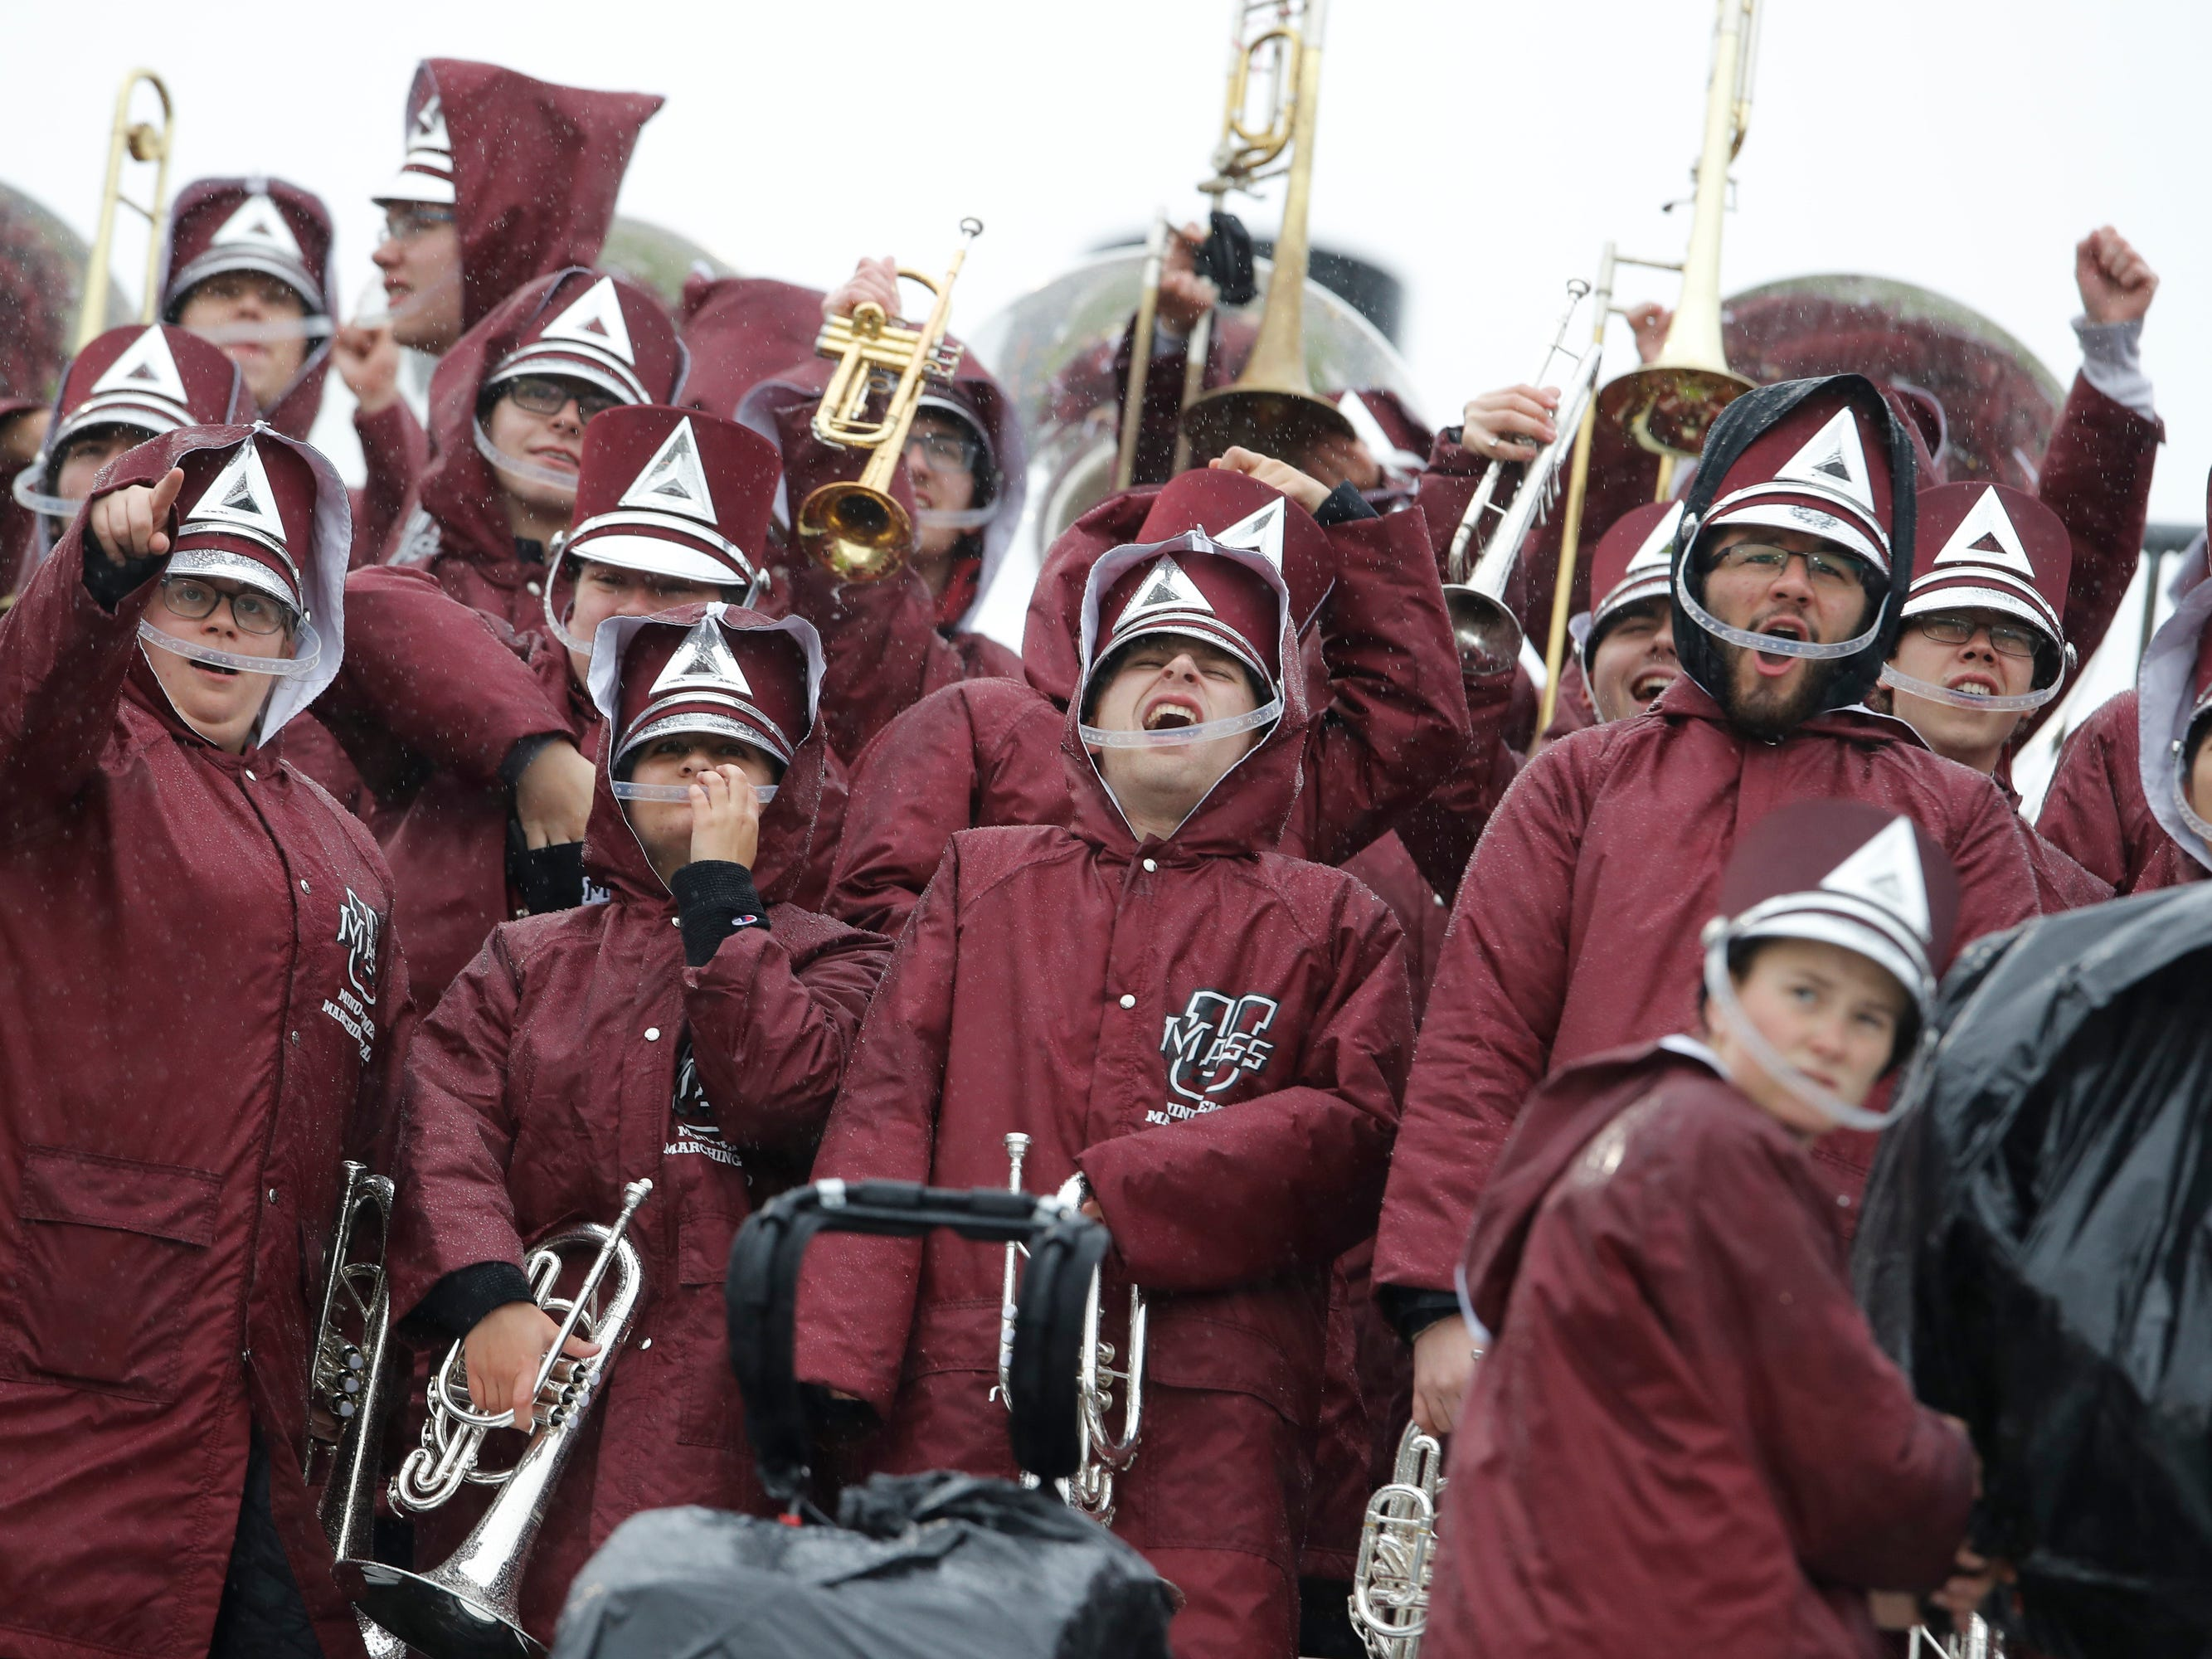 Week 9: The Massachusetts Minutemen band warms up before the start of the game against the Connecticut Huskies at Pratt & Whitney Stadium at Rentschler Field.